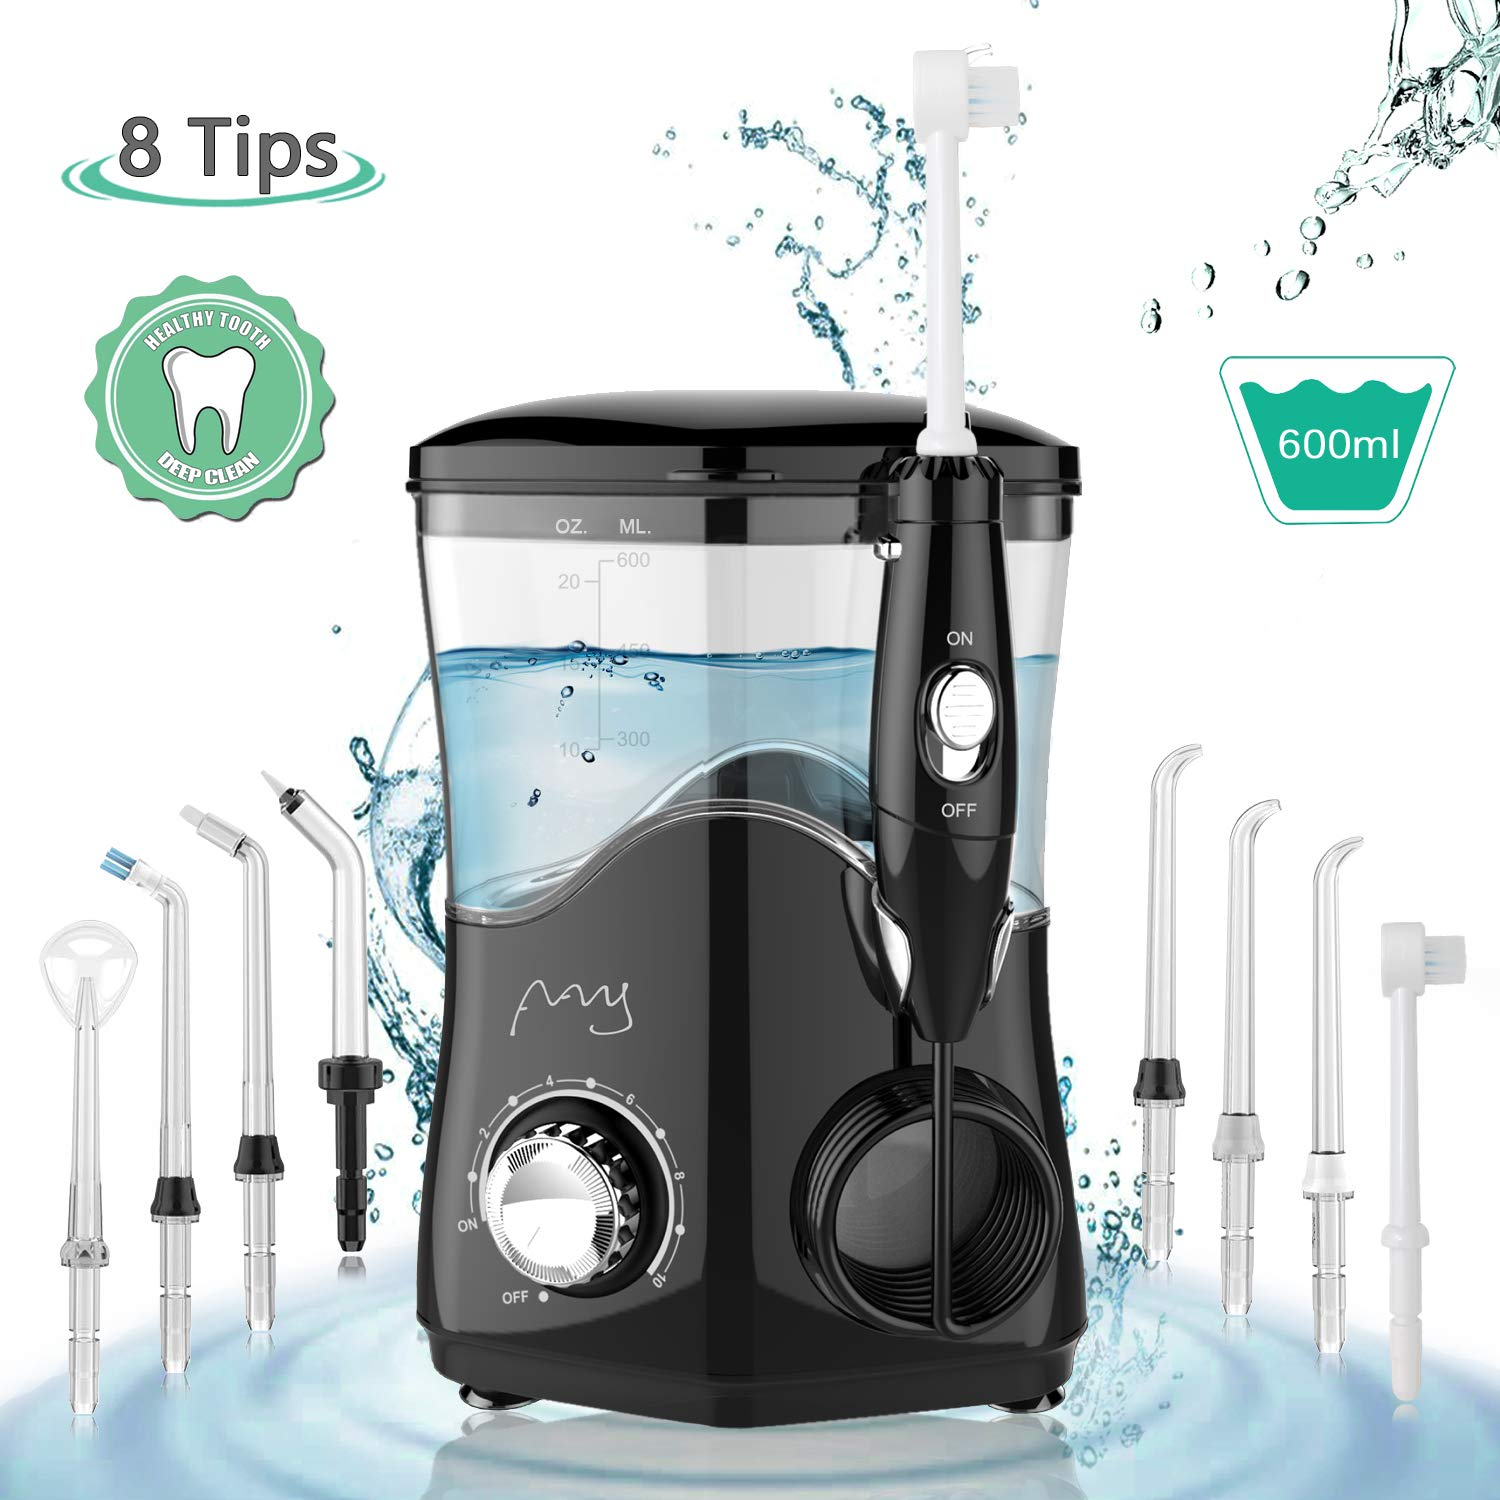 Electric Water Flosser,Professional 600ml Power Dental Countertop Oral Irrigator,Water Pick Teeth Cleaner w/ 10 Pressure Settings 8 Rotatable Multifunctional Tips for Braces Care Home by FFY